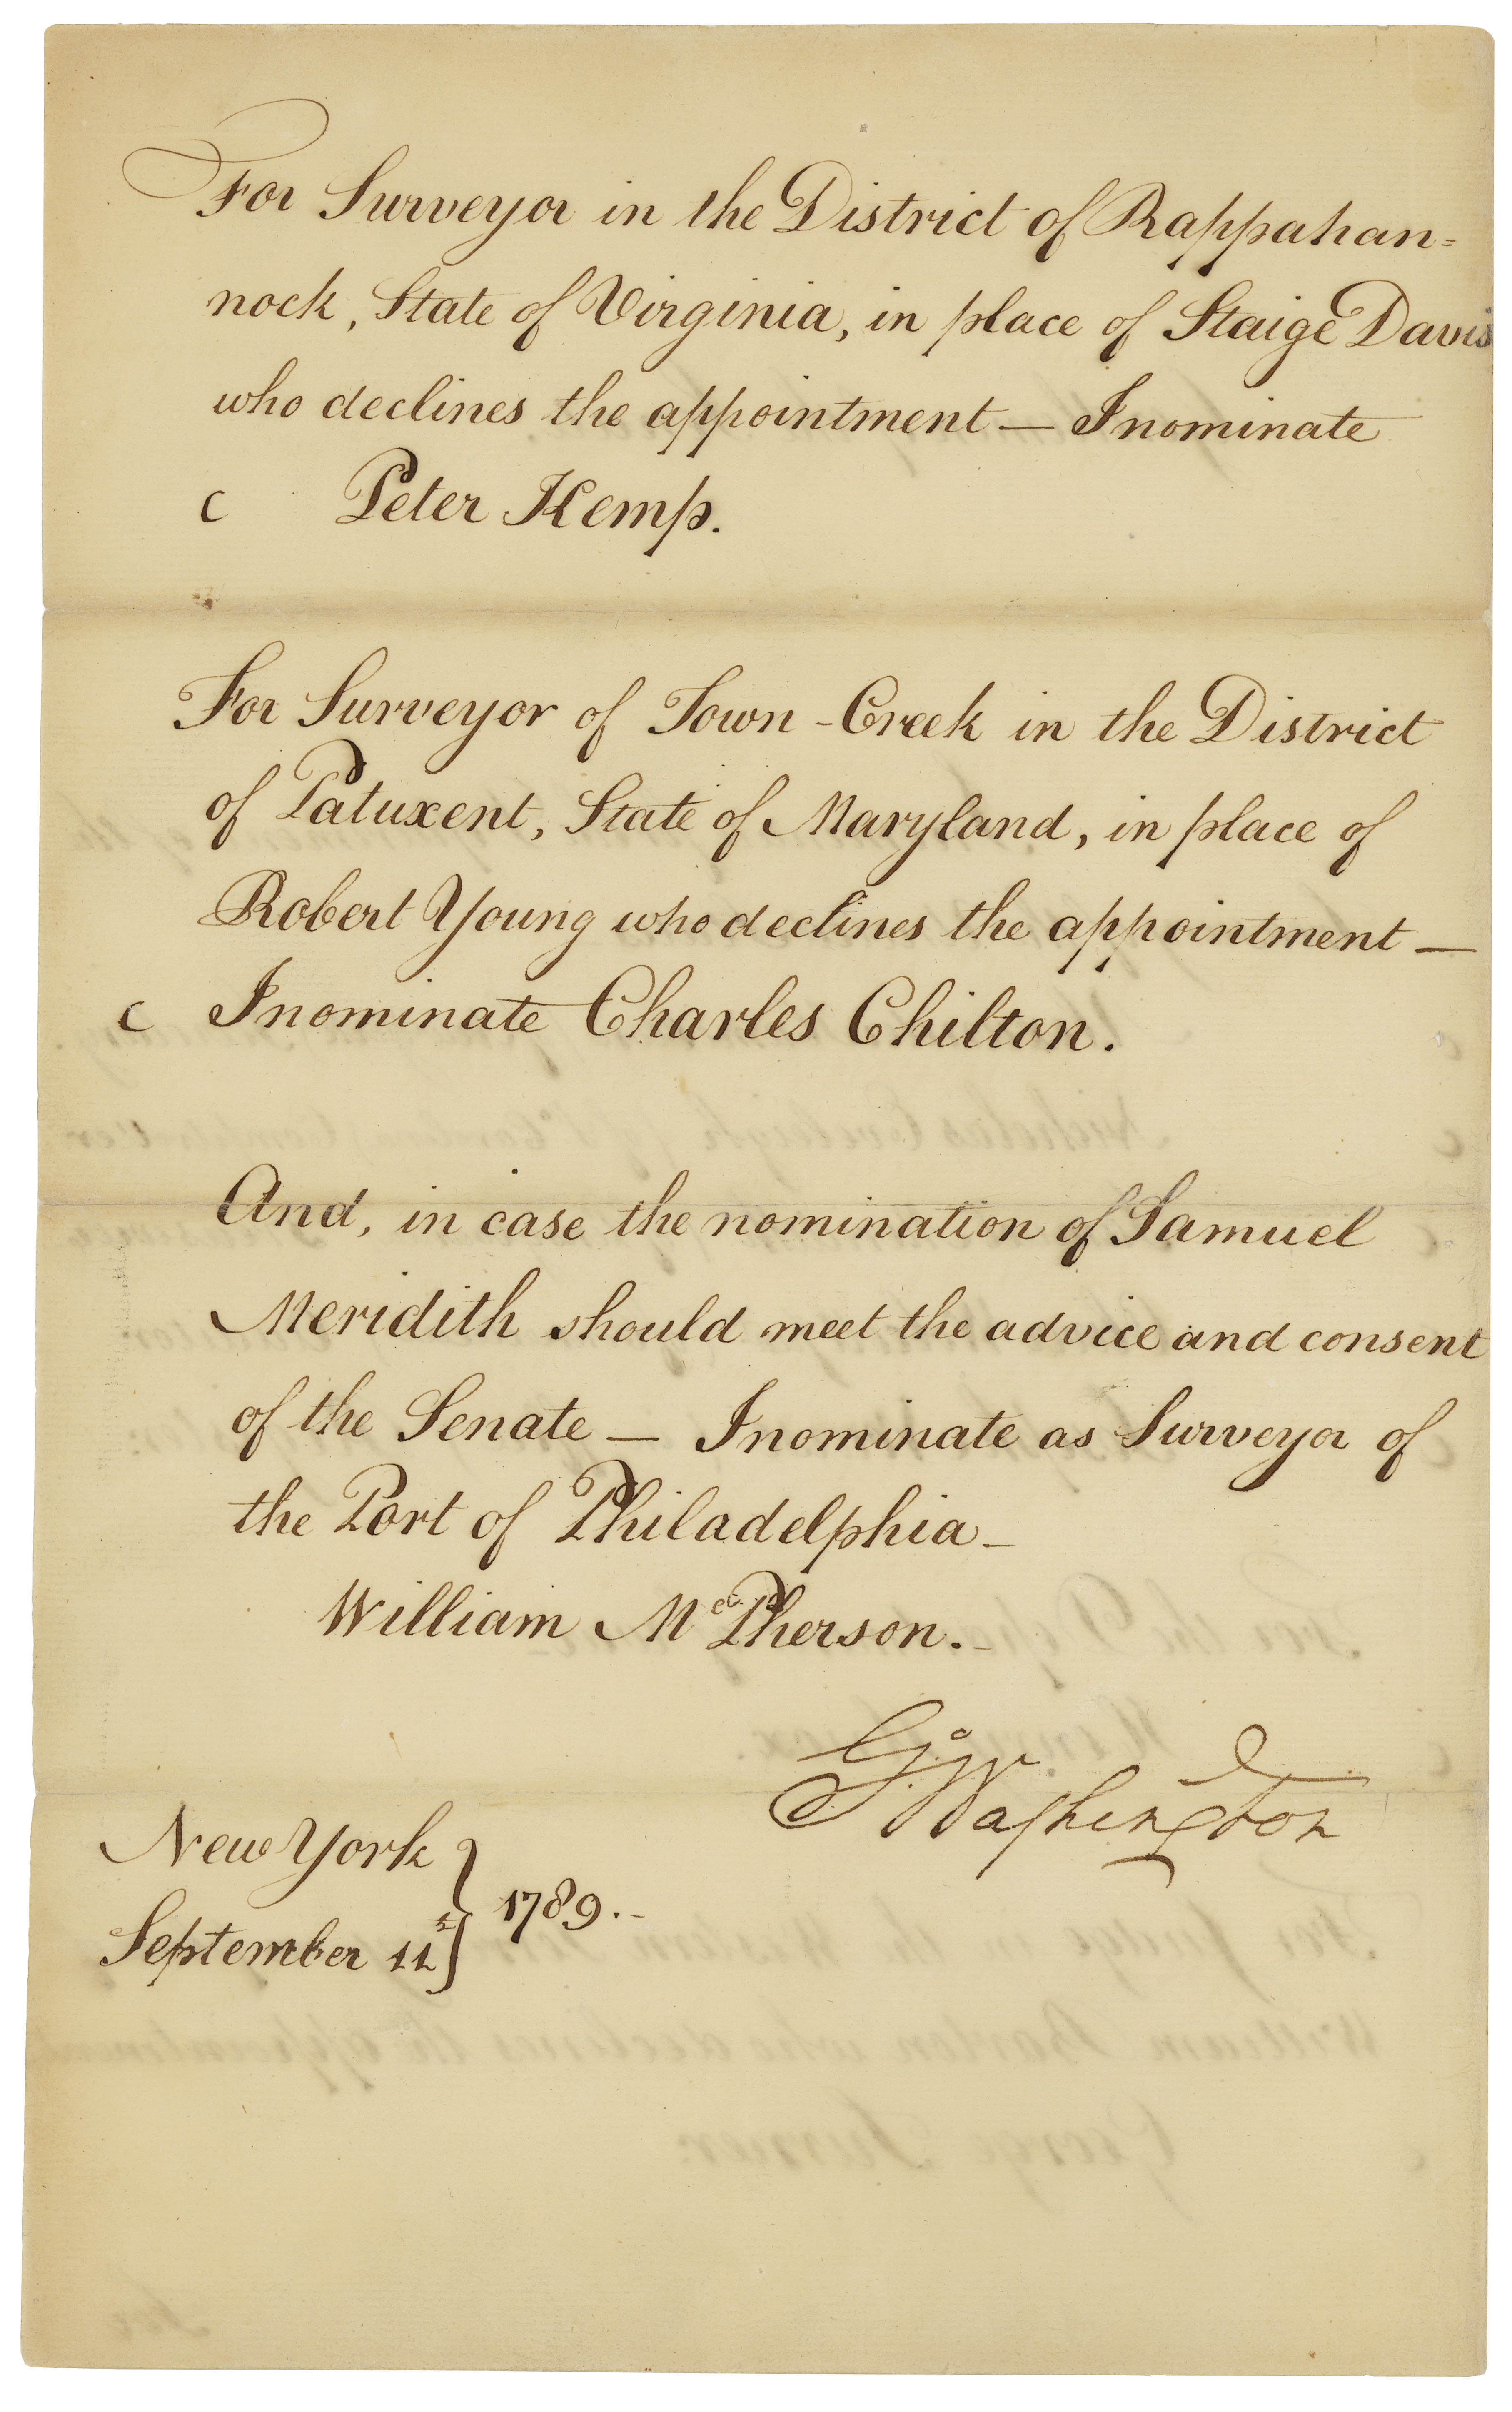 George Washington's nomination of Alexander Hamilton and others, back, September 11, 1789. (Records of the U.S. Senate, National Archives)